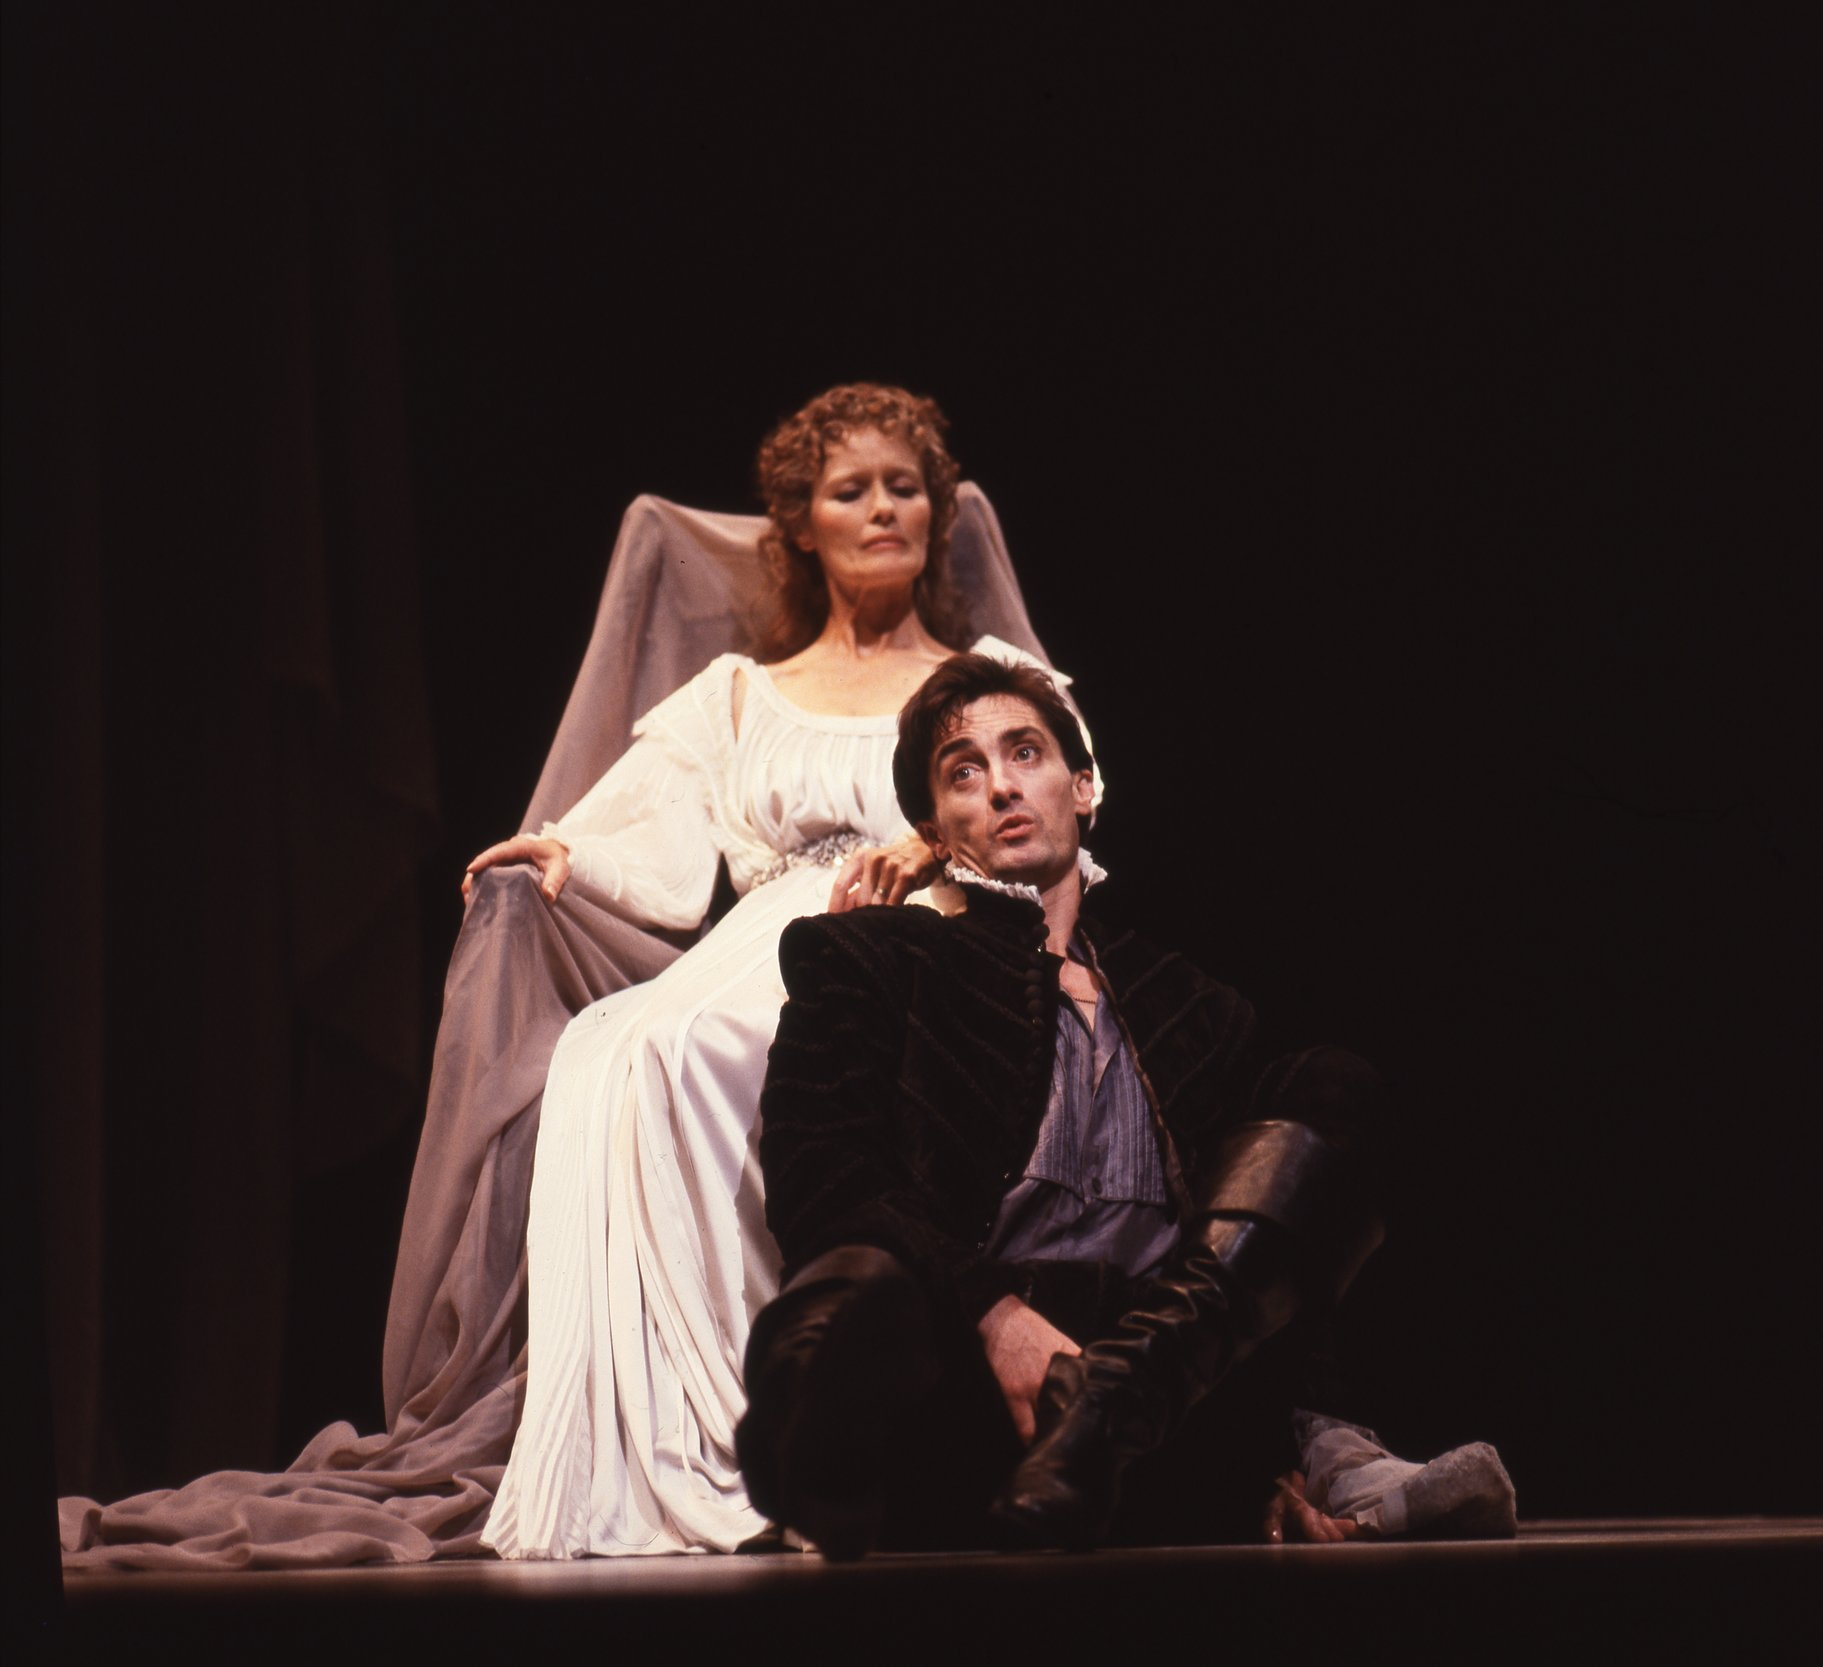 Hamlet and Gertrude in the 1984 production of Hamlet.